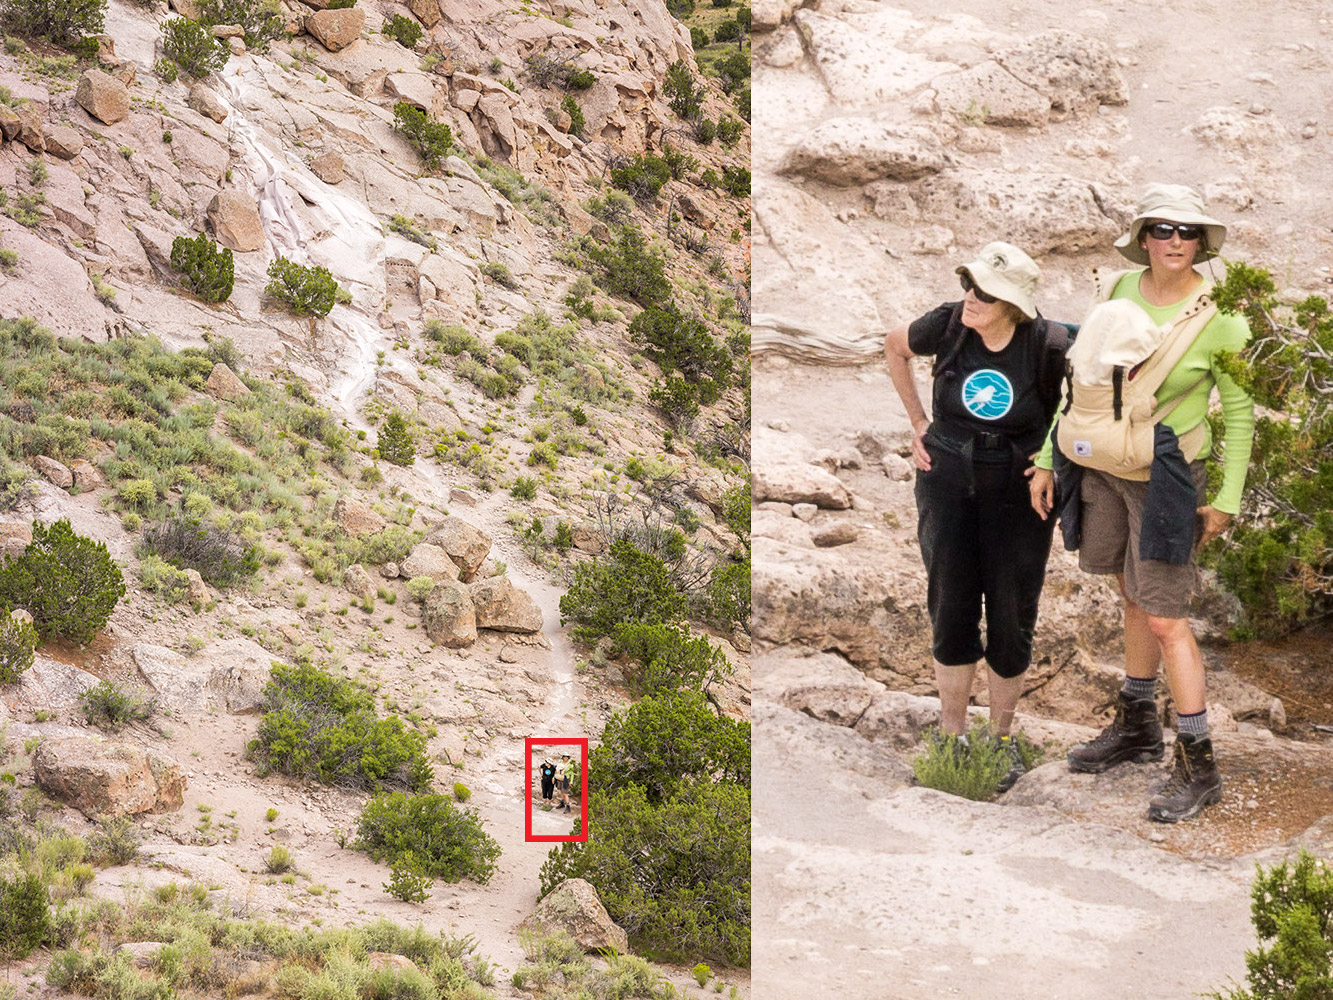 The red box in the image at left is shown at 100 percent magnification at right. The 10,328x7,760 resolution of the IQ3 captures an immense amount of detail, enough to crop in on photos when necessary with plenty of pixels still available for many publishing situations.